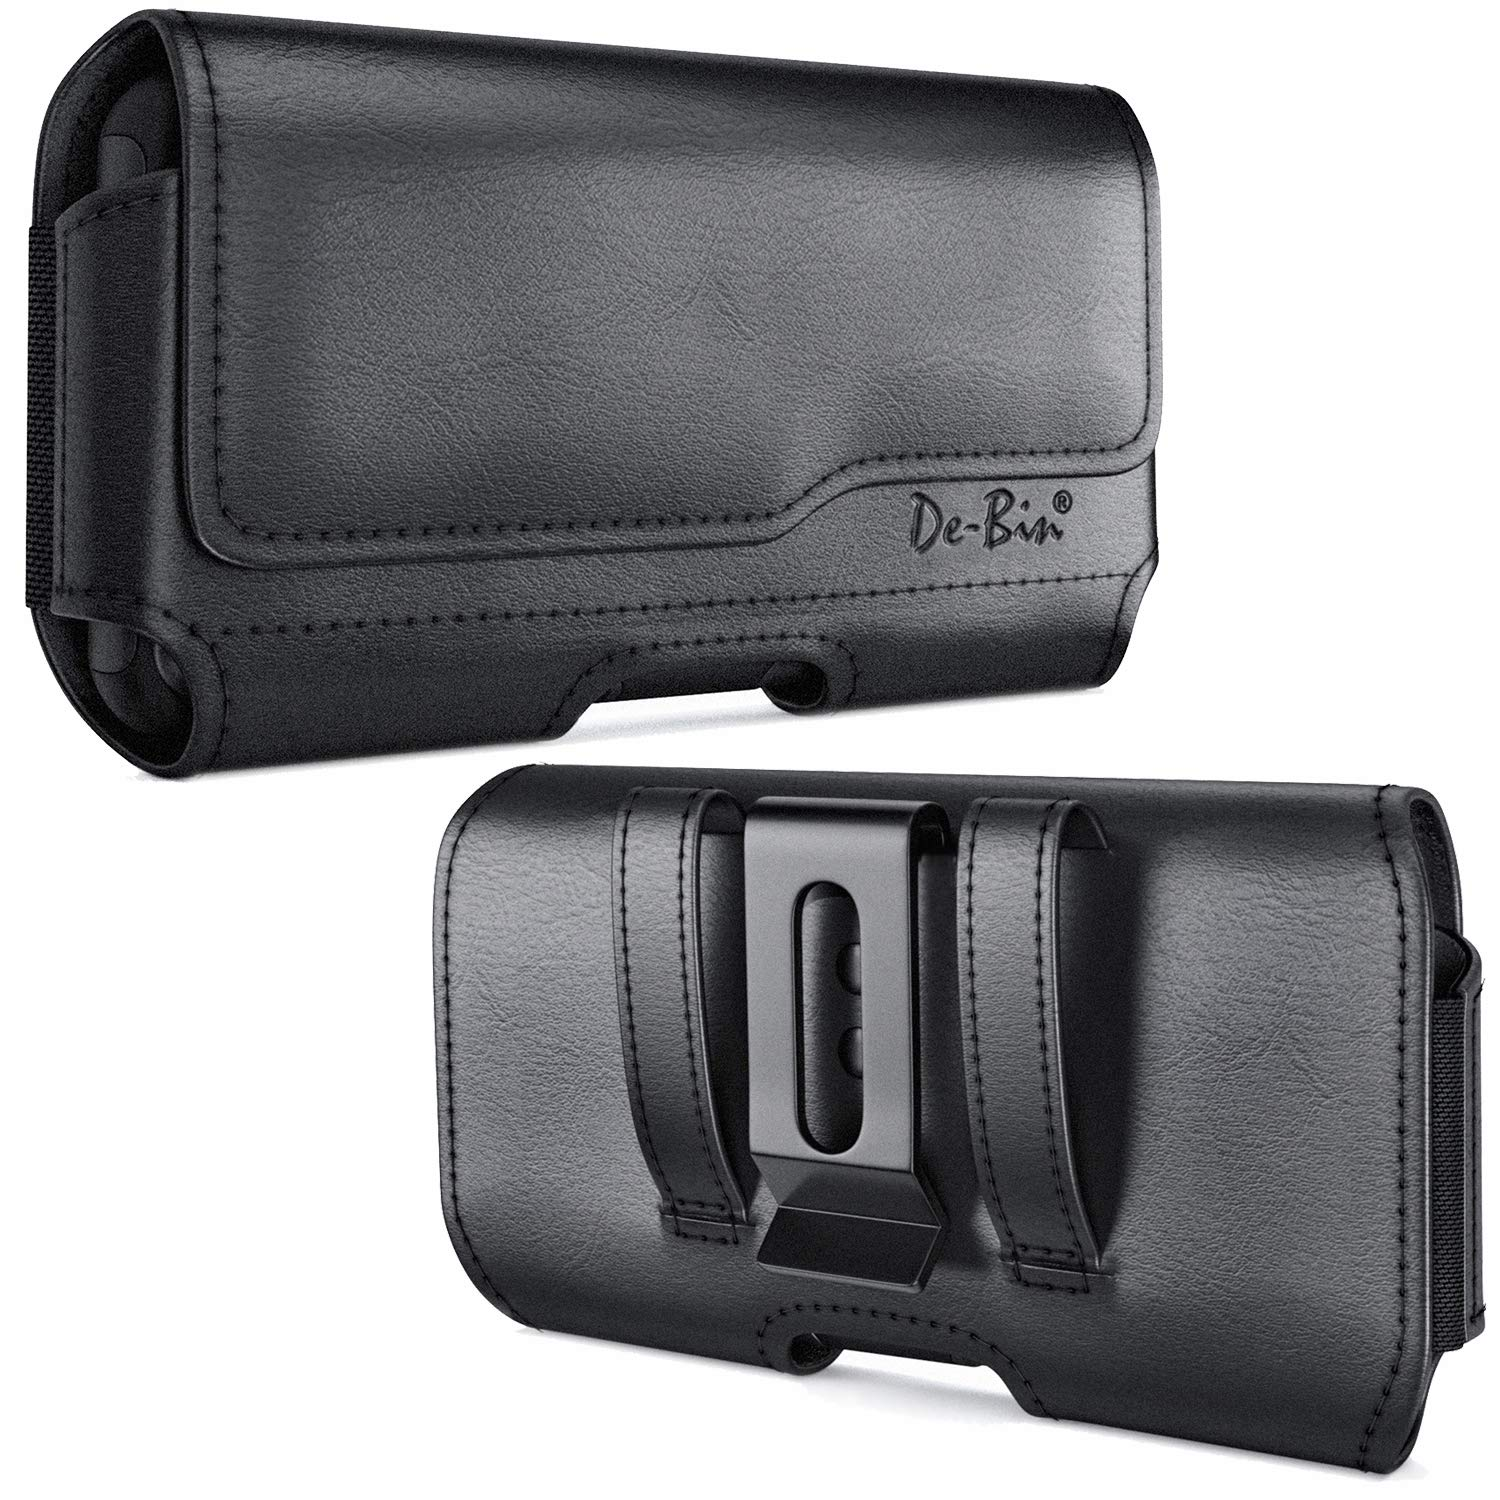 Holster Leather Otterbox Lifeproof Waterproof